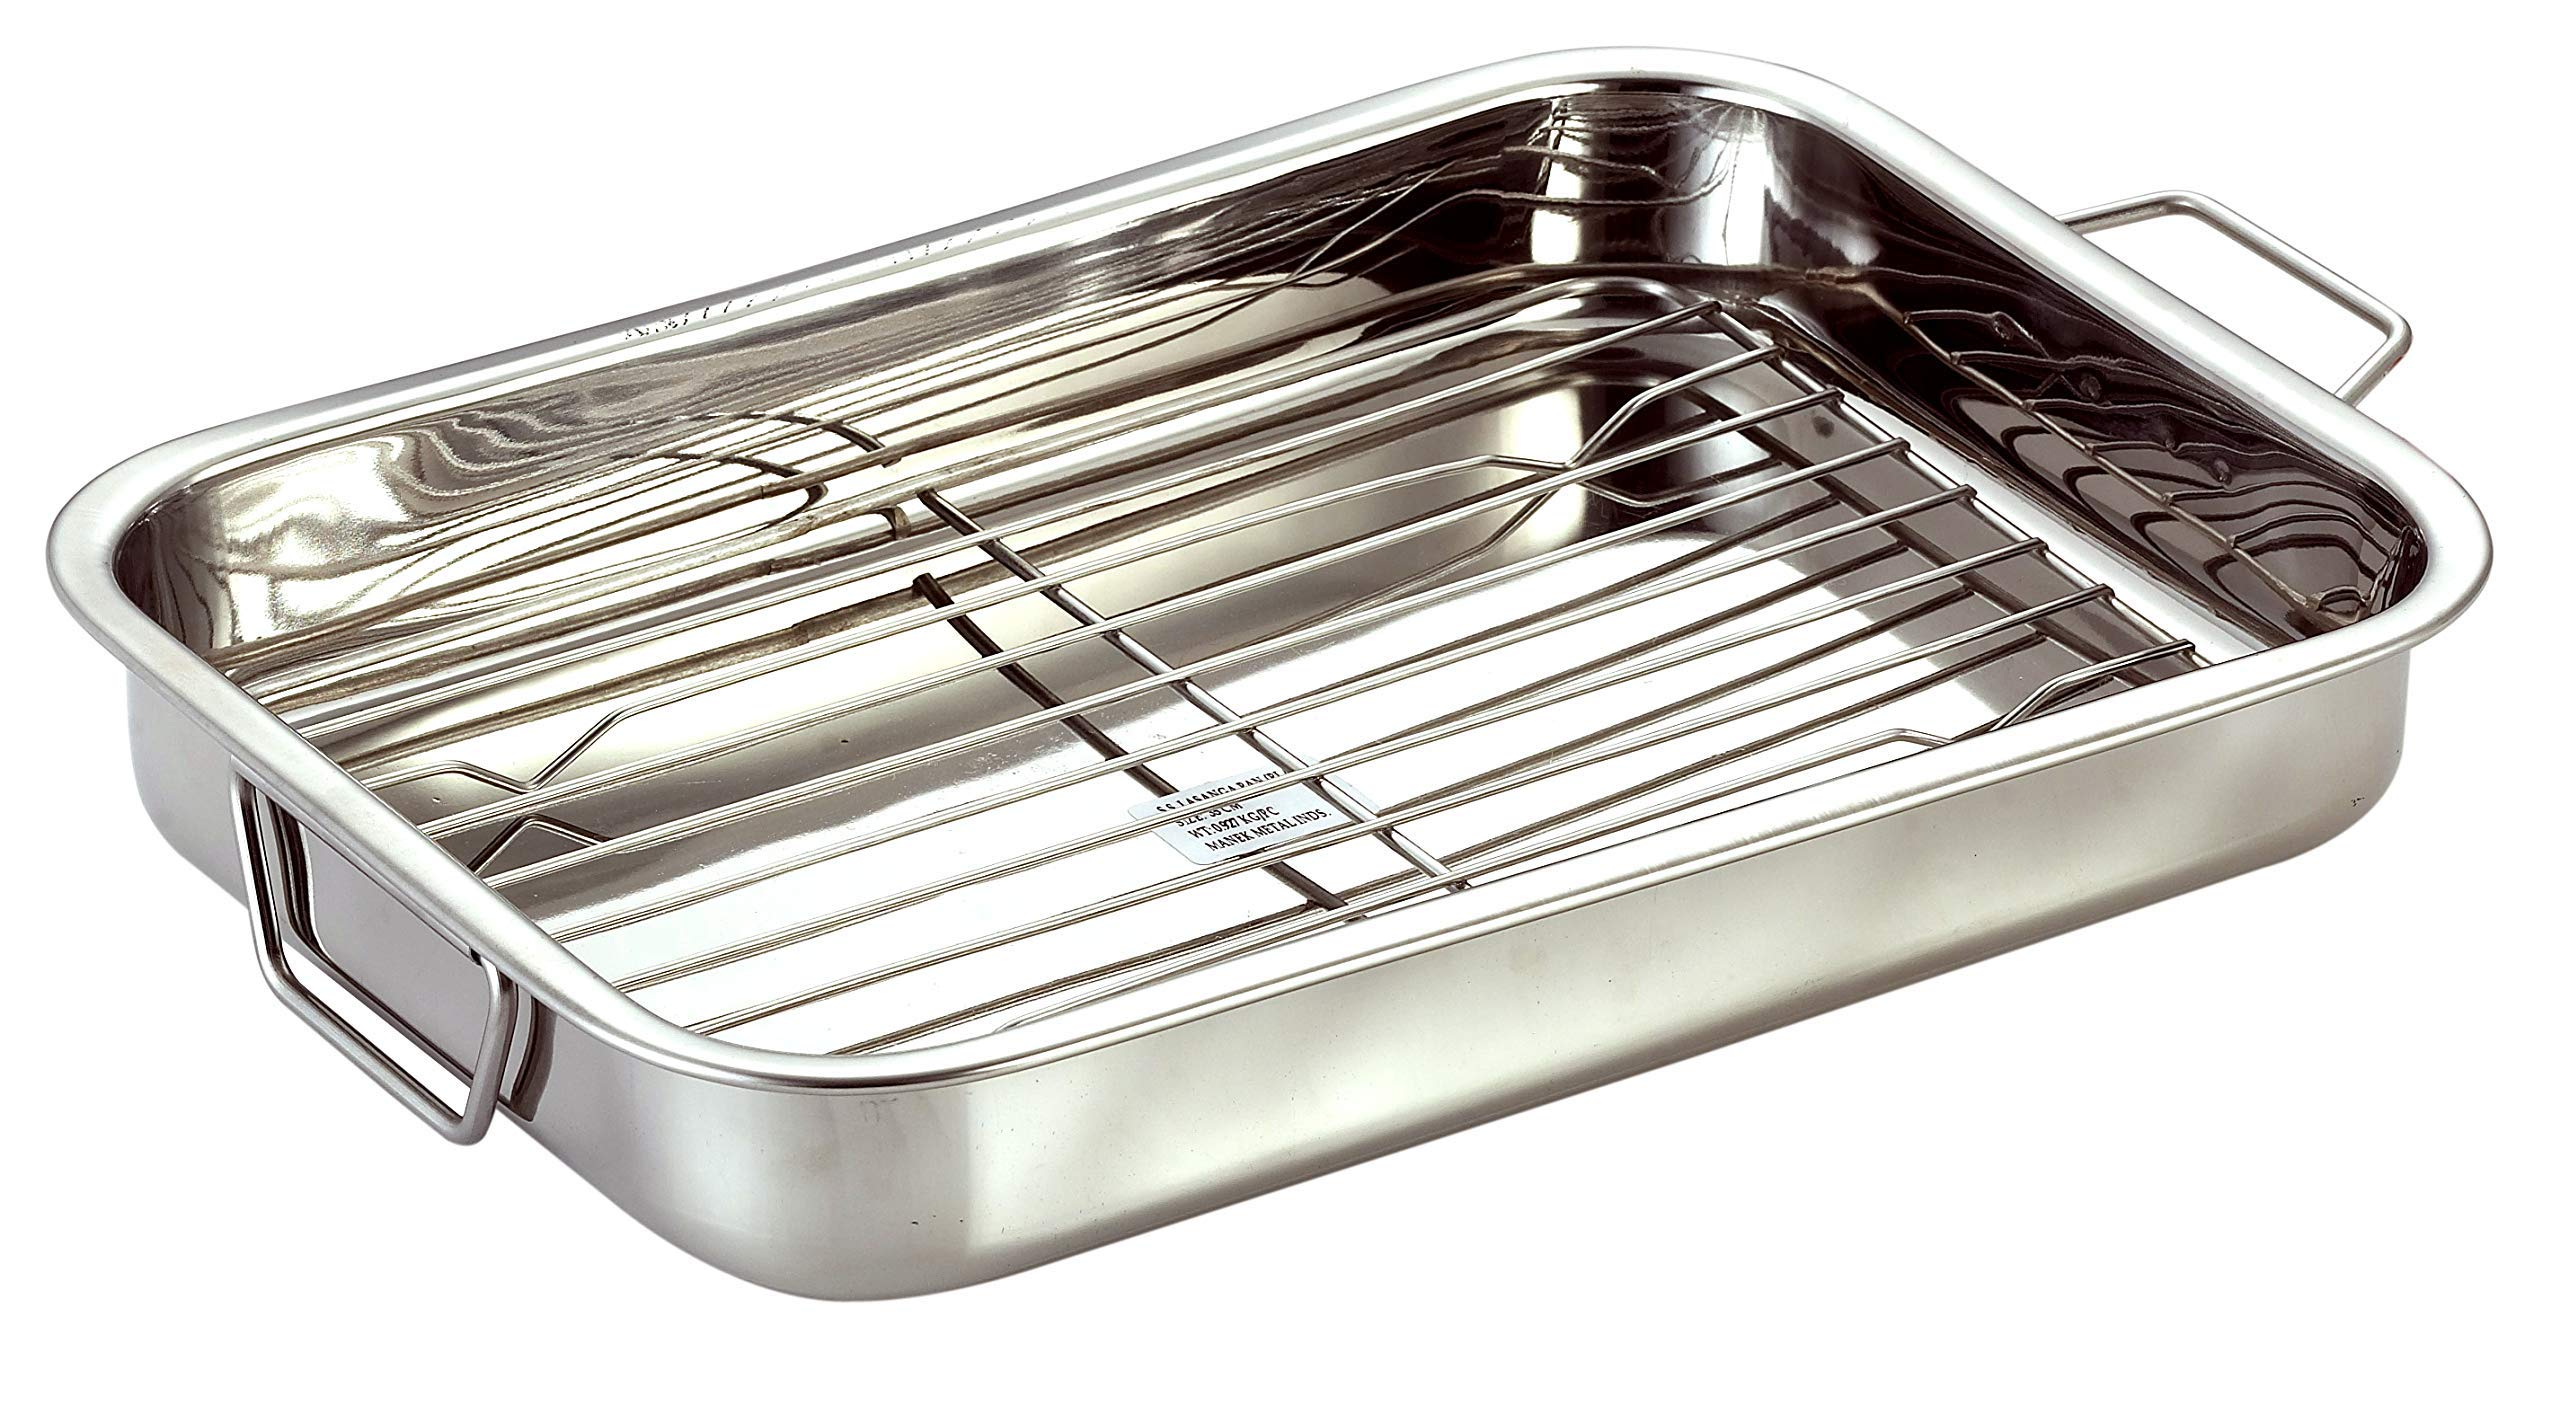 Chef Direct Stainless Steel Roast Pan with Grill Rack & Folding Handles // Rectangular Lasagna Pan for Baking, Grilling, Roasting // OTG Oven Safe (With Grill Roasting Rack (30cm X 21cm)) by Chef Direct